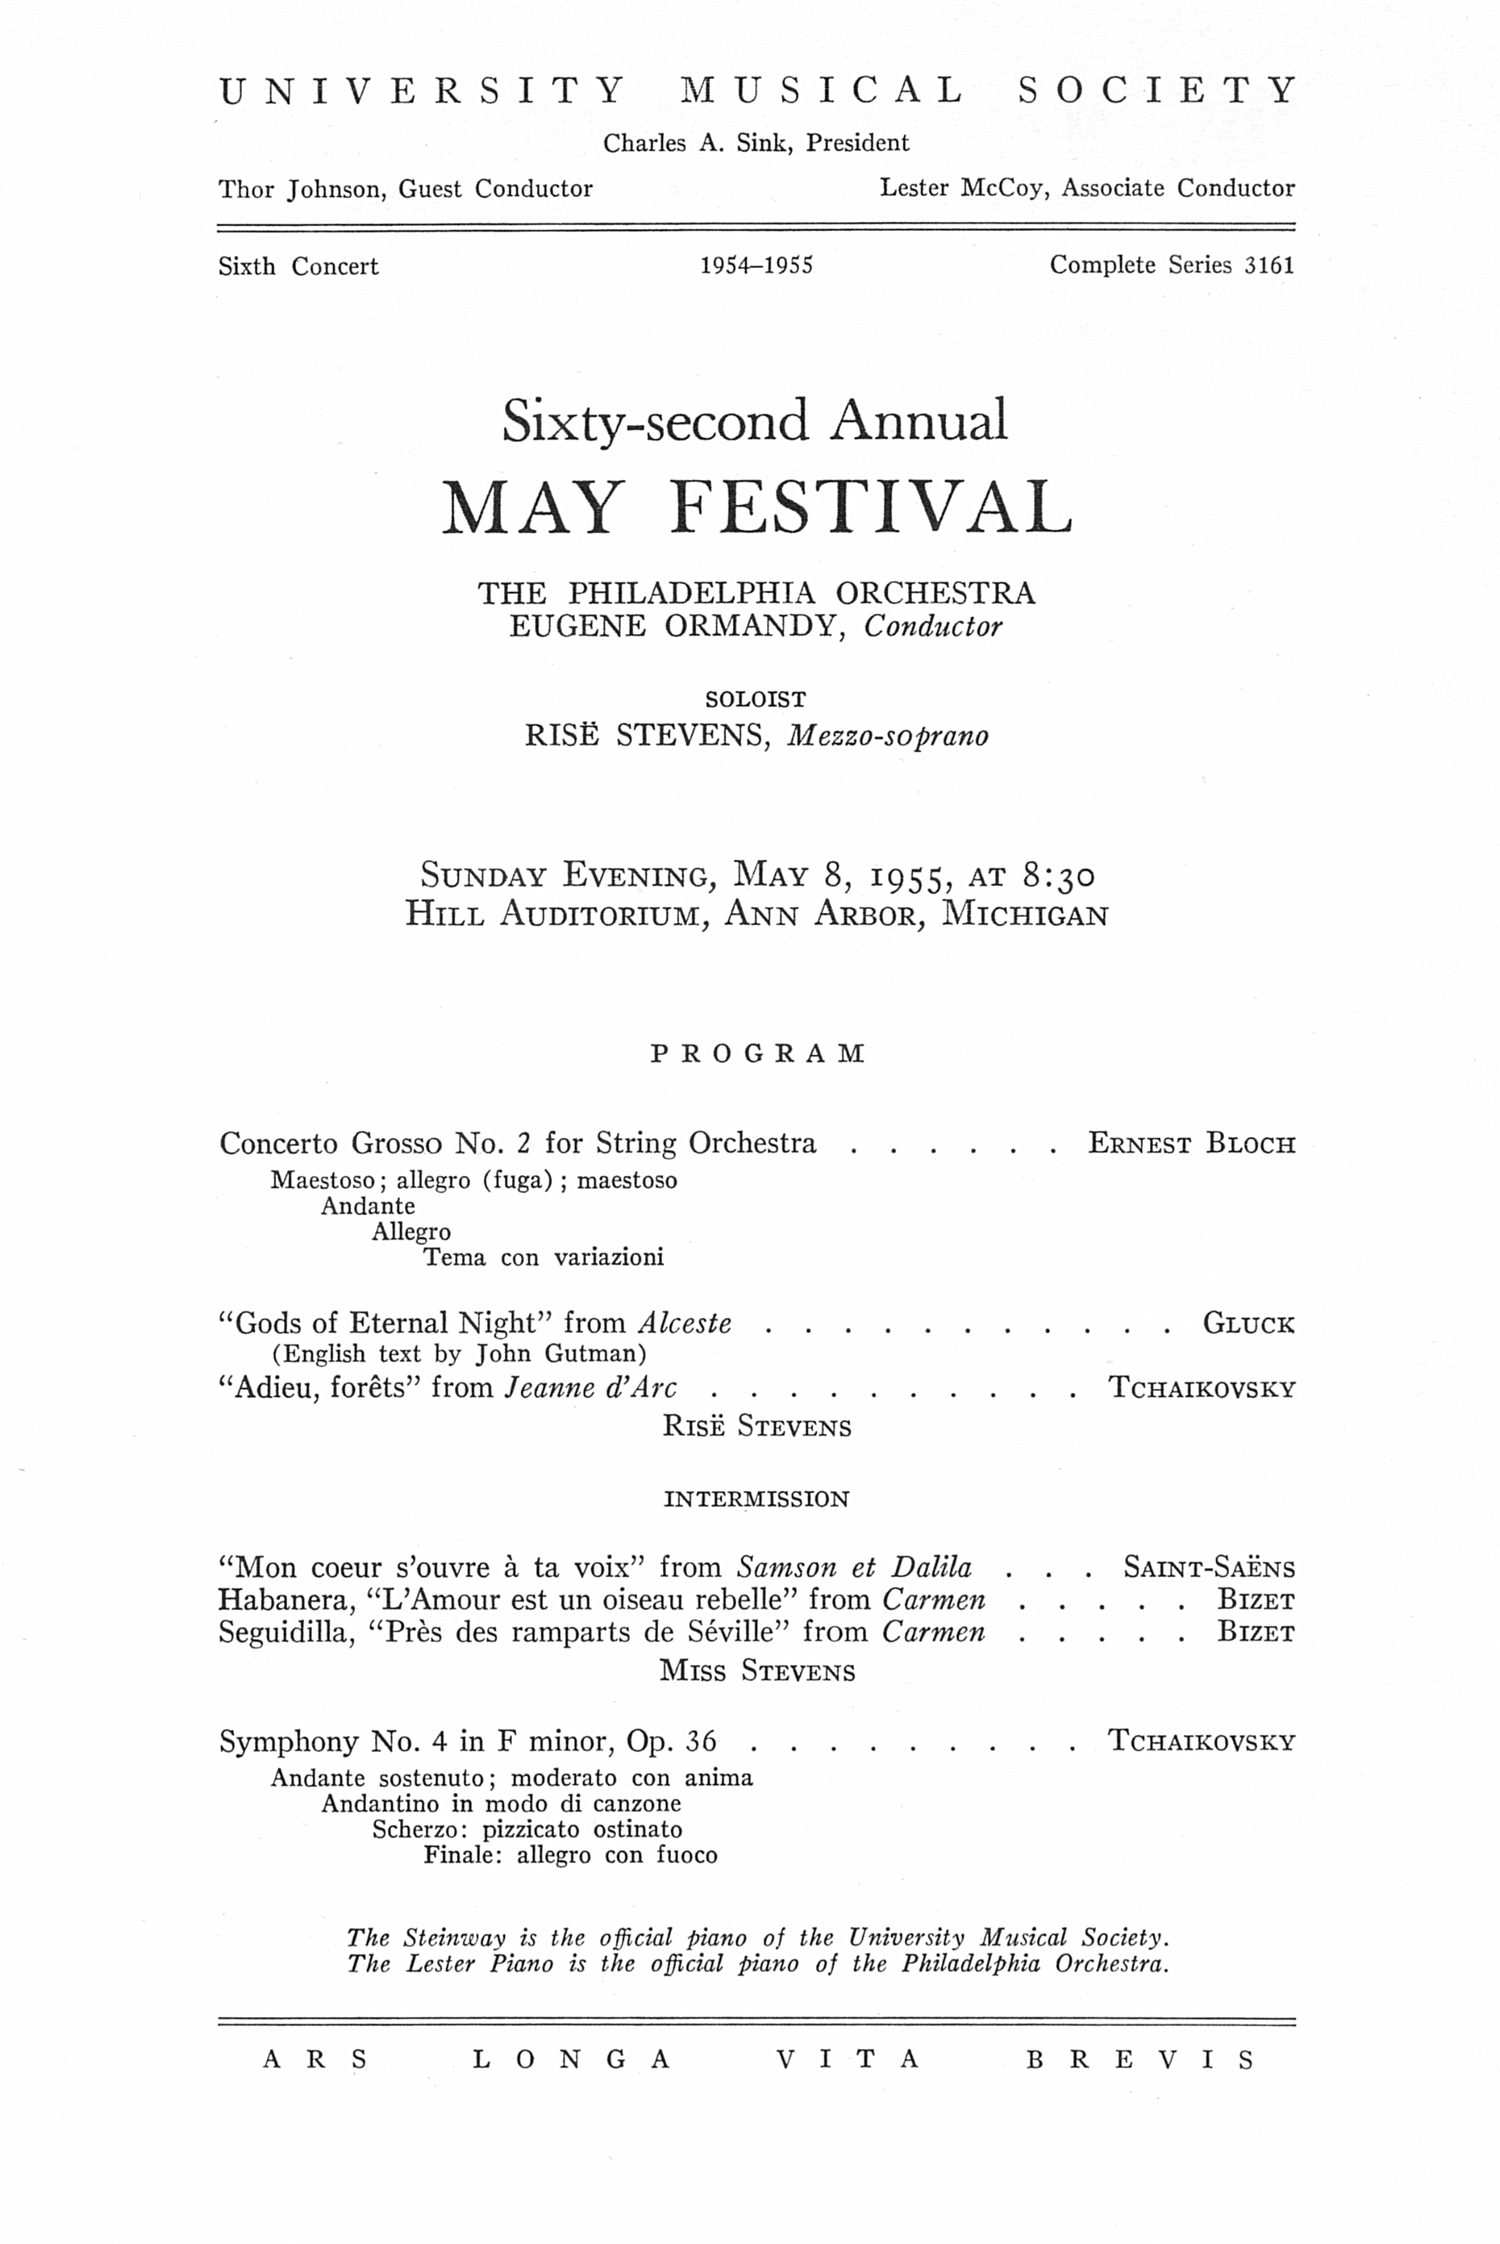 UMS Concert Program, May 8, 1955: Sixty-second Annual May Festival -- The Philadelphia Orchestra image